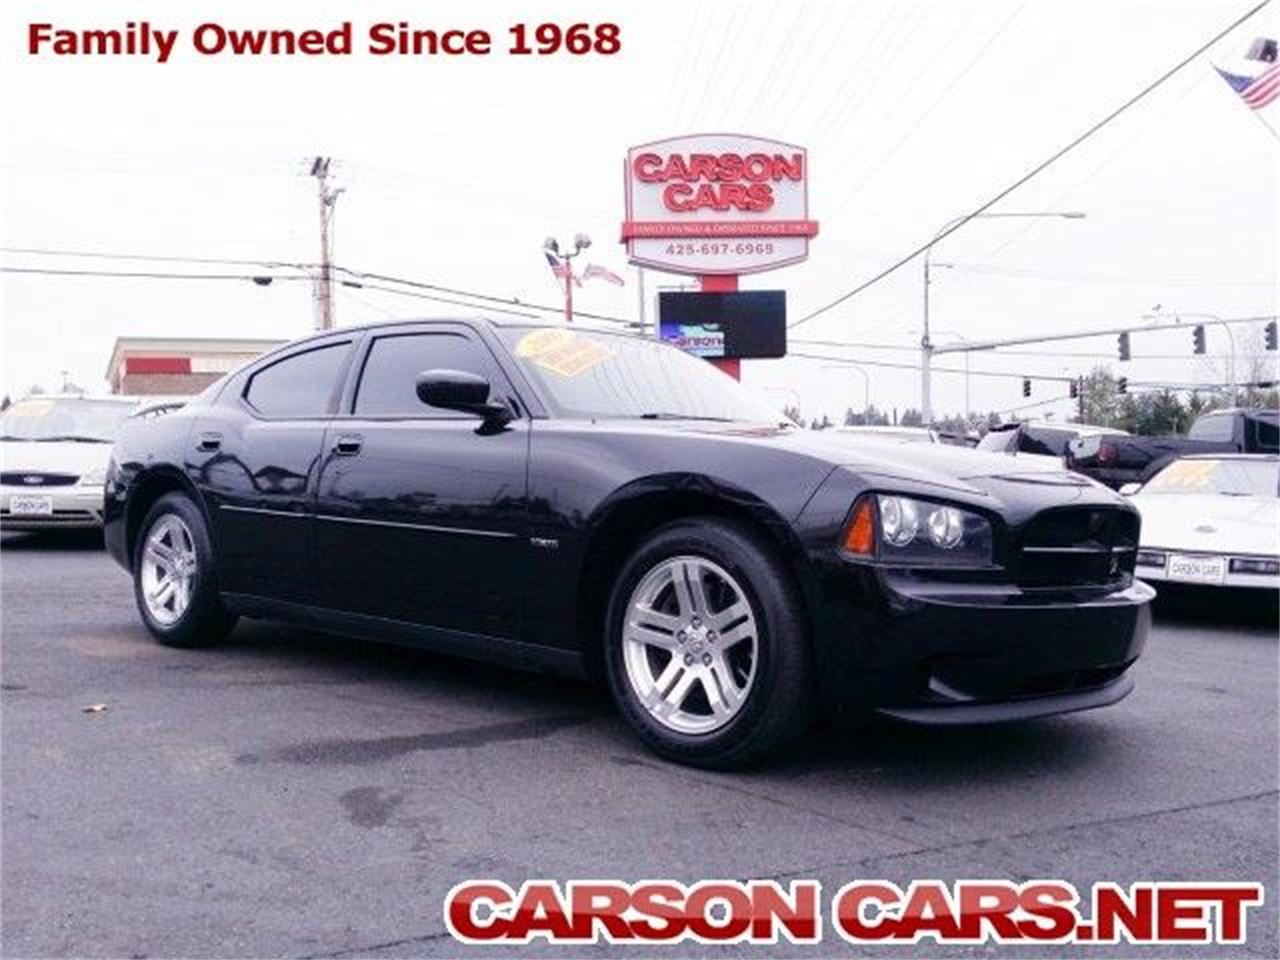 2007 Dodge Charger For Sale >> For Sale 2007 Dodge Charger In Lynnwood Washington